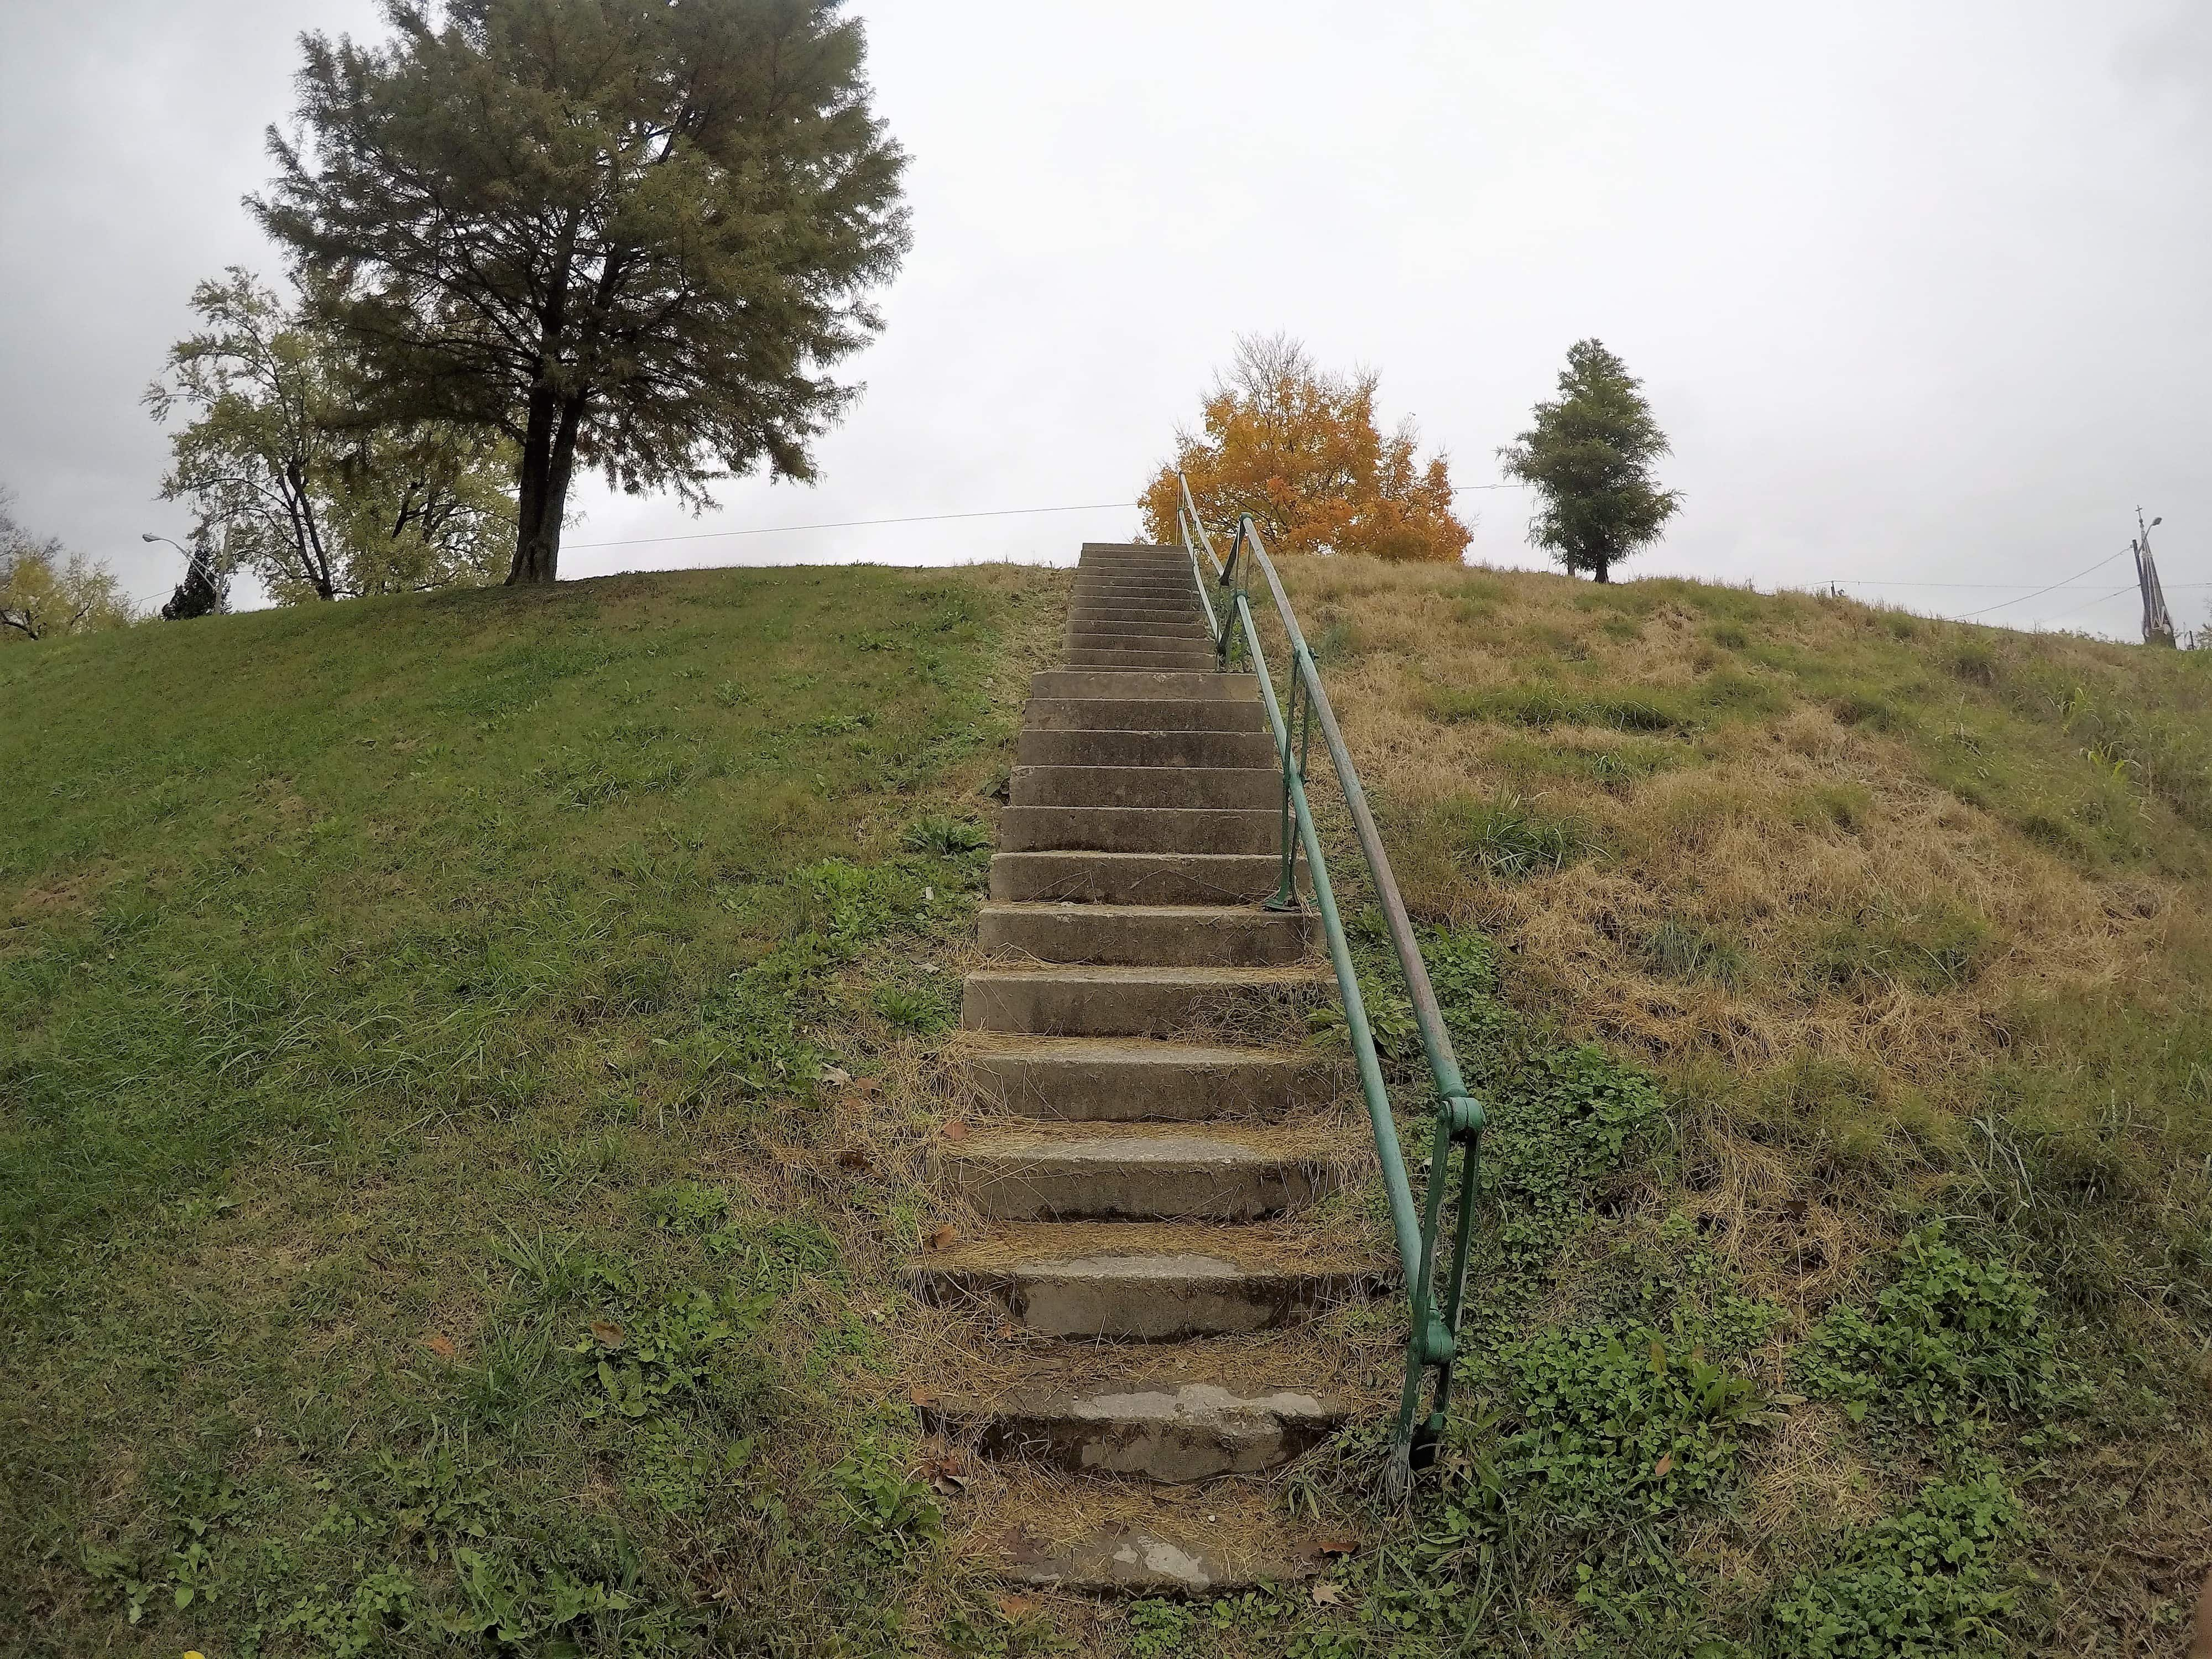 Fairbanks Avenue, leading to Price Hill, sits at the top of this staircase. Both Fairbanks Avenue and River Road were raised 15 feet to prevent flooding during improvements. The elevation of the roads is indicated here.